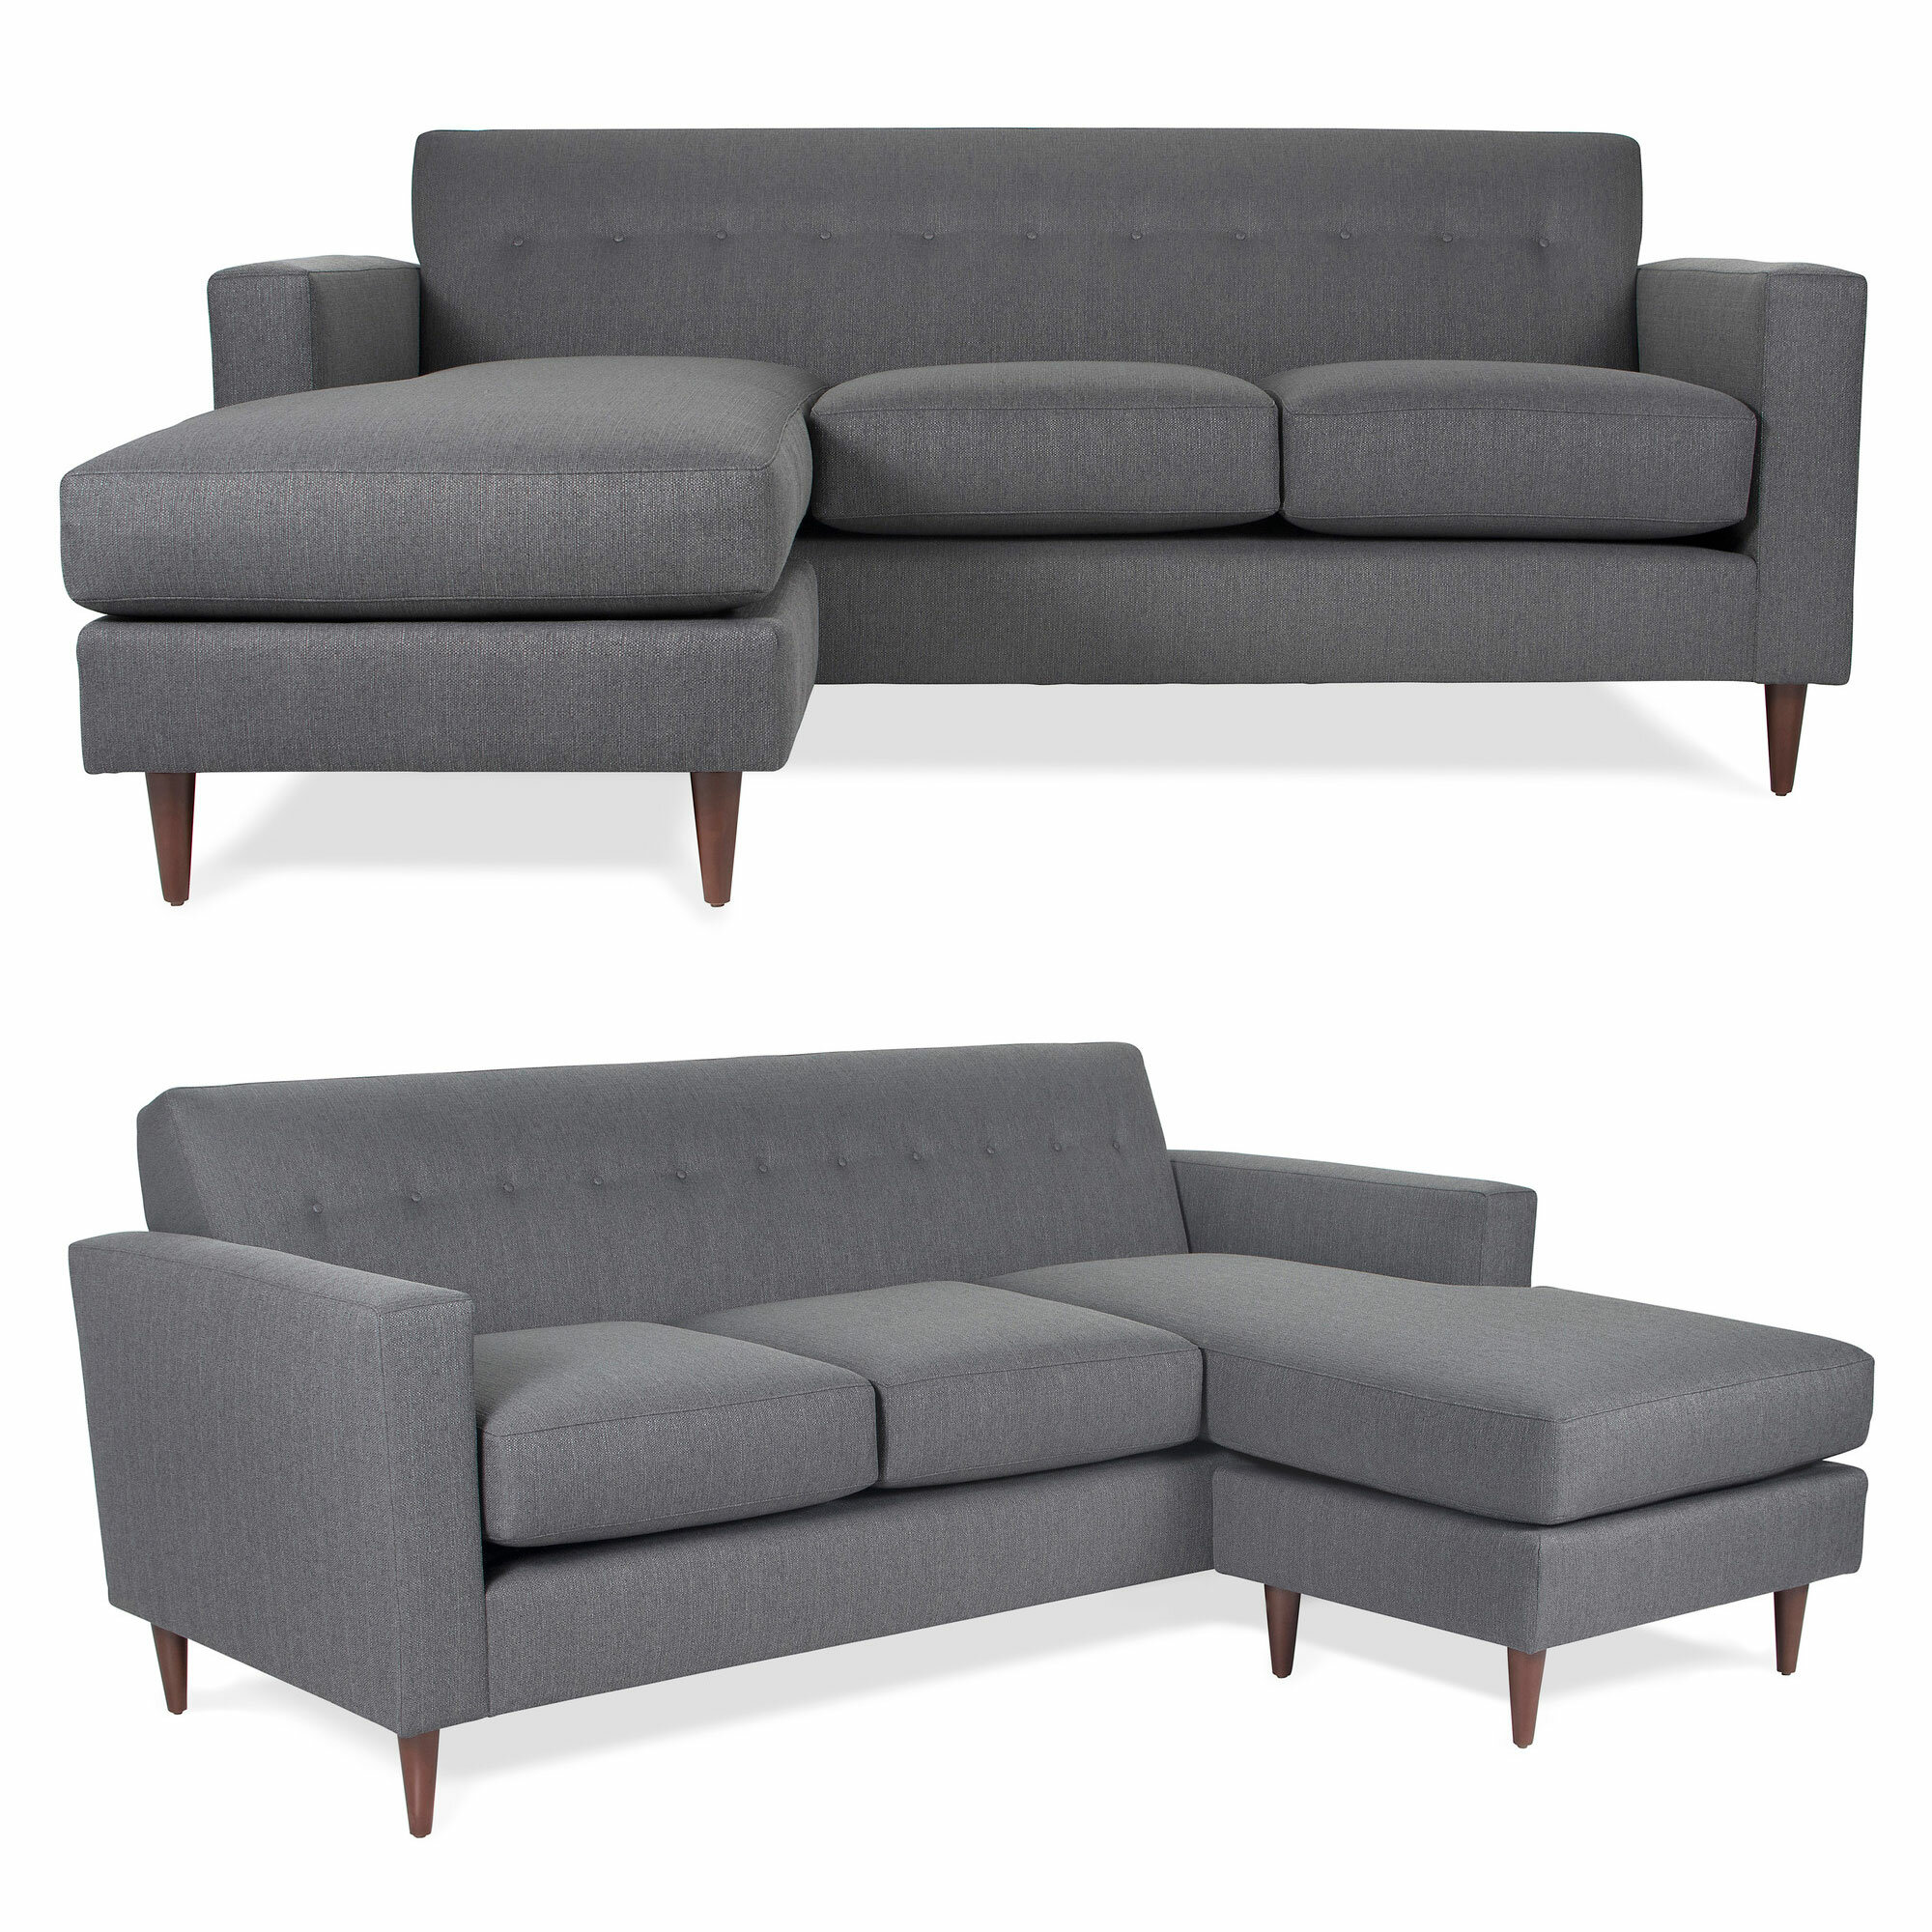 Remarkable Sectional Sofa Buying Guide Wayfair Spiritservingveterans Wood Chair Design Ideas Spiritservingveteransorg